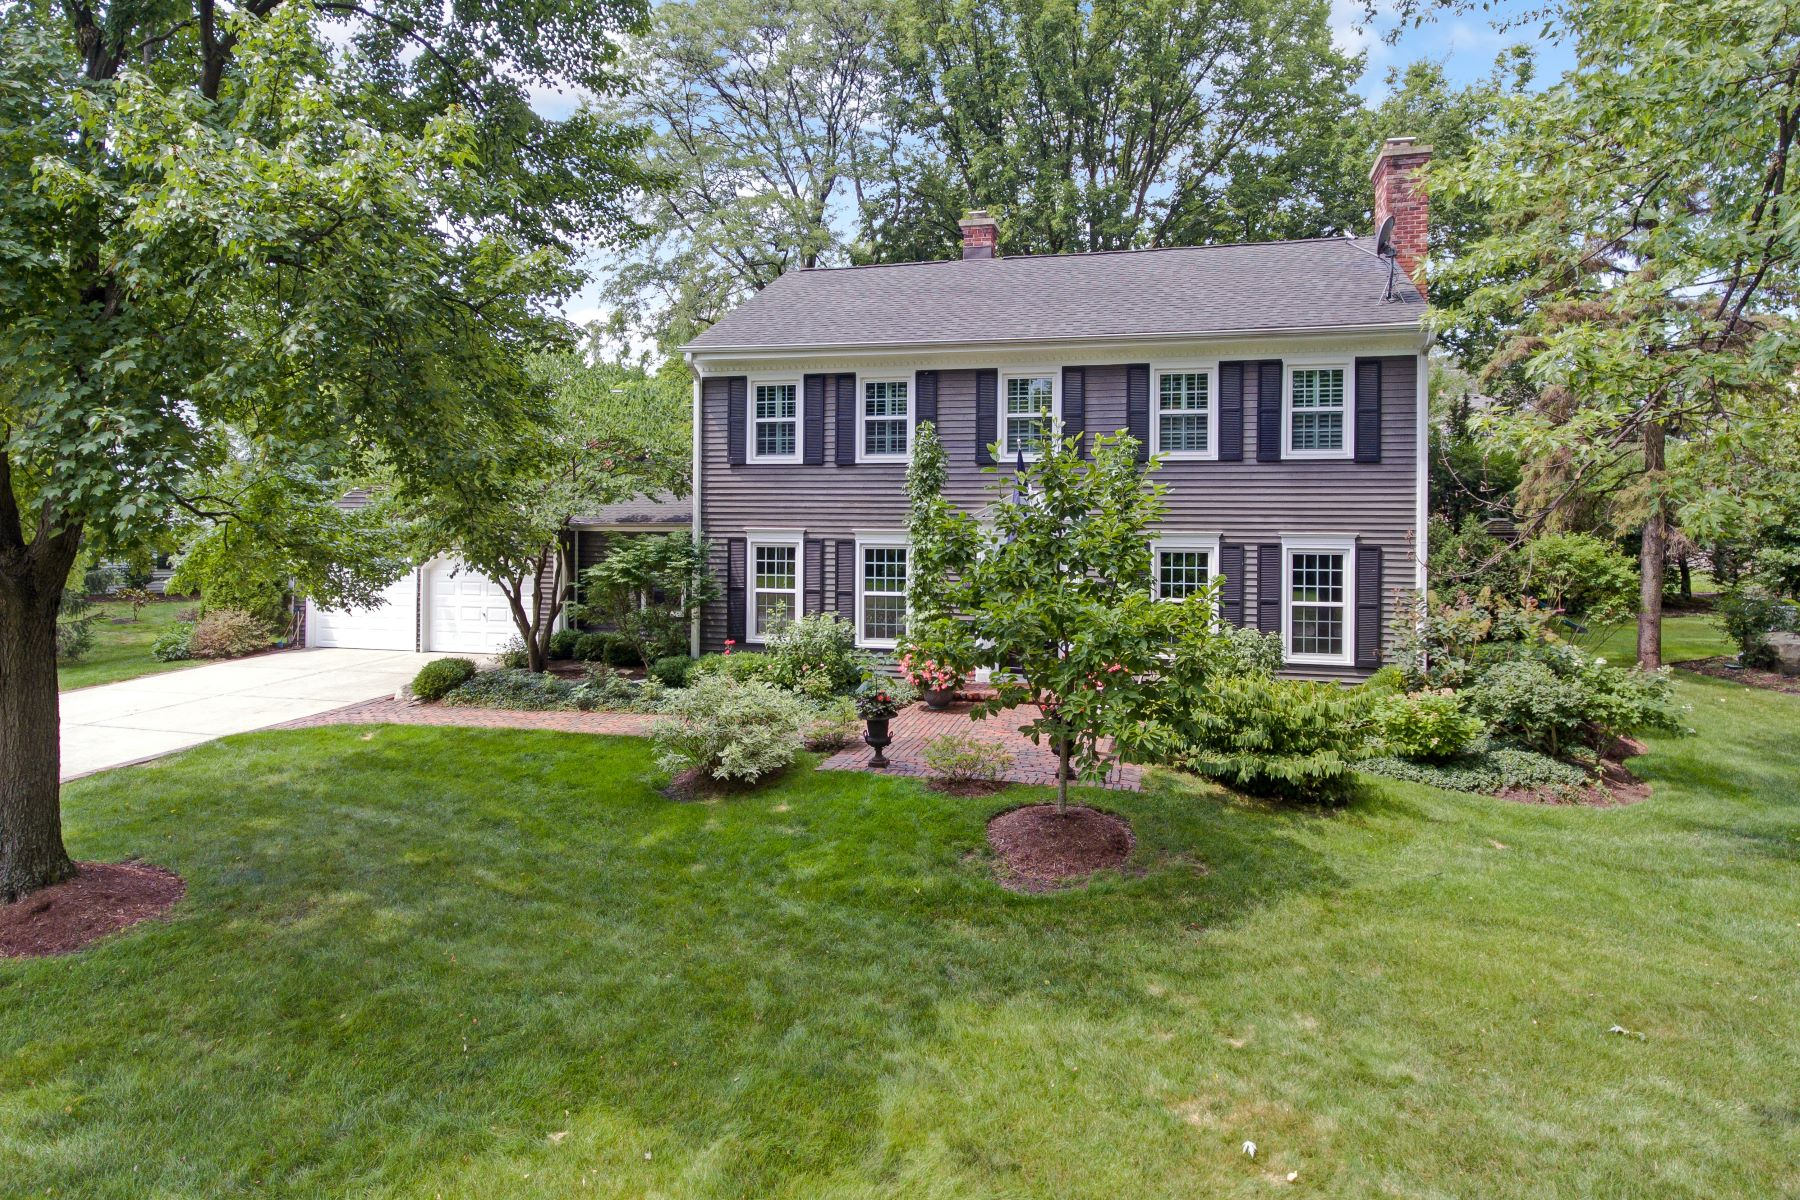 Property for Sale at Charming Hinsdale Home 800 Harding Road Hinsdale - Cook County, Illinois 60521 United States